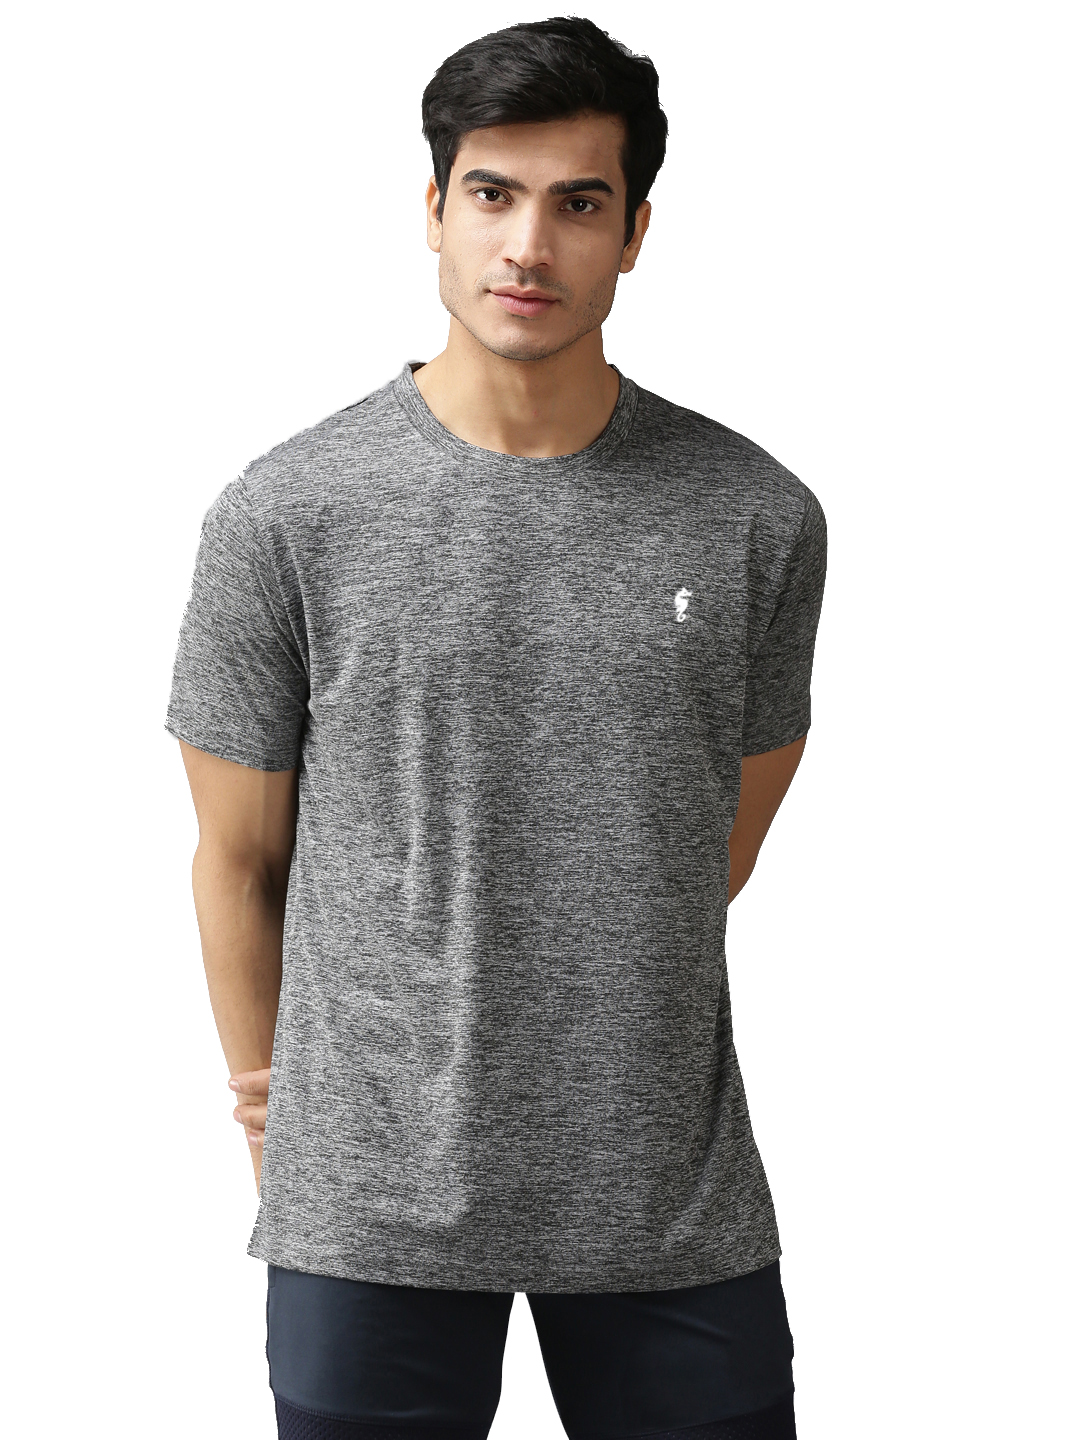 EPPE Men's Round Neck Half Sleeve Grey Melange Dryfit Micropolyester Active Performance Sports Tshirt